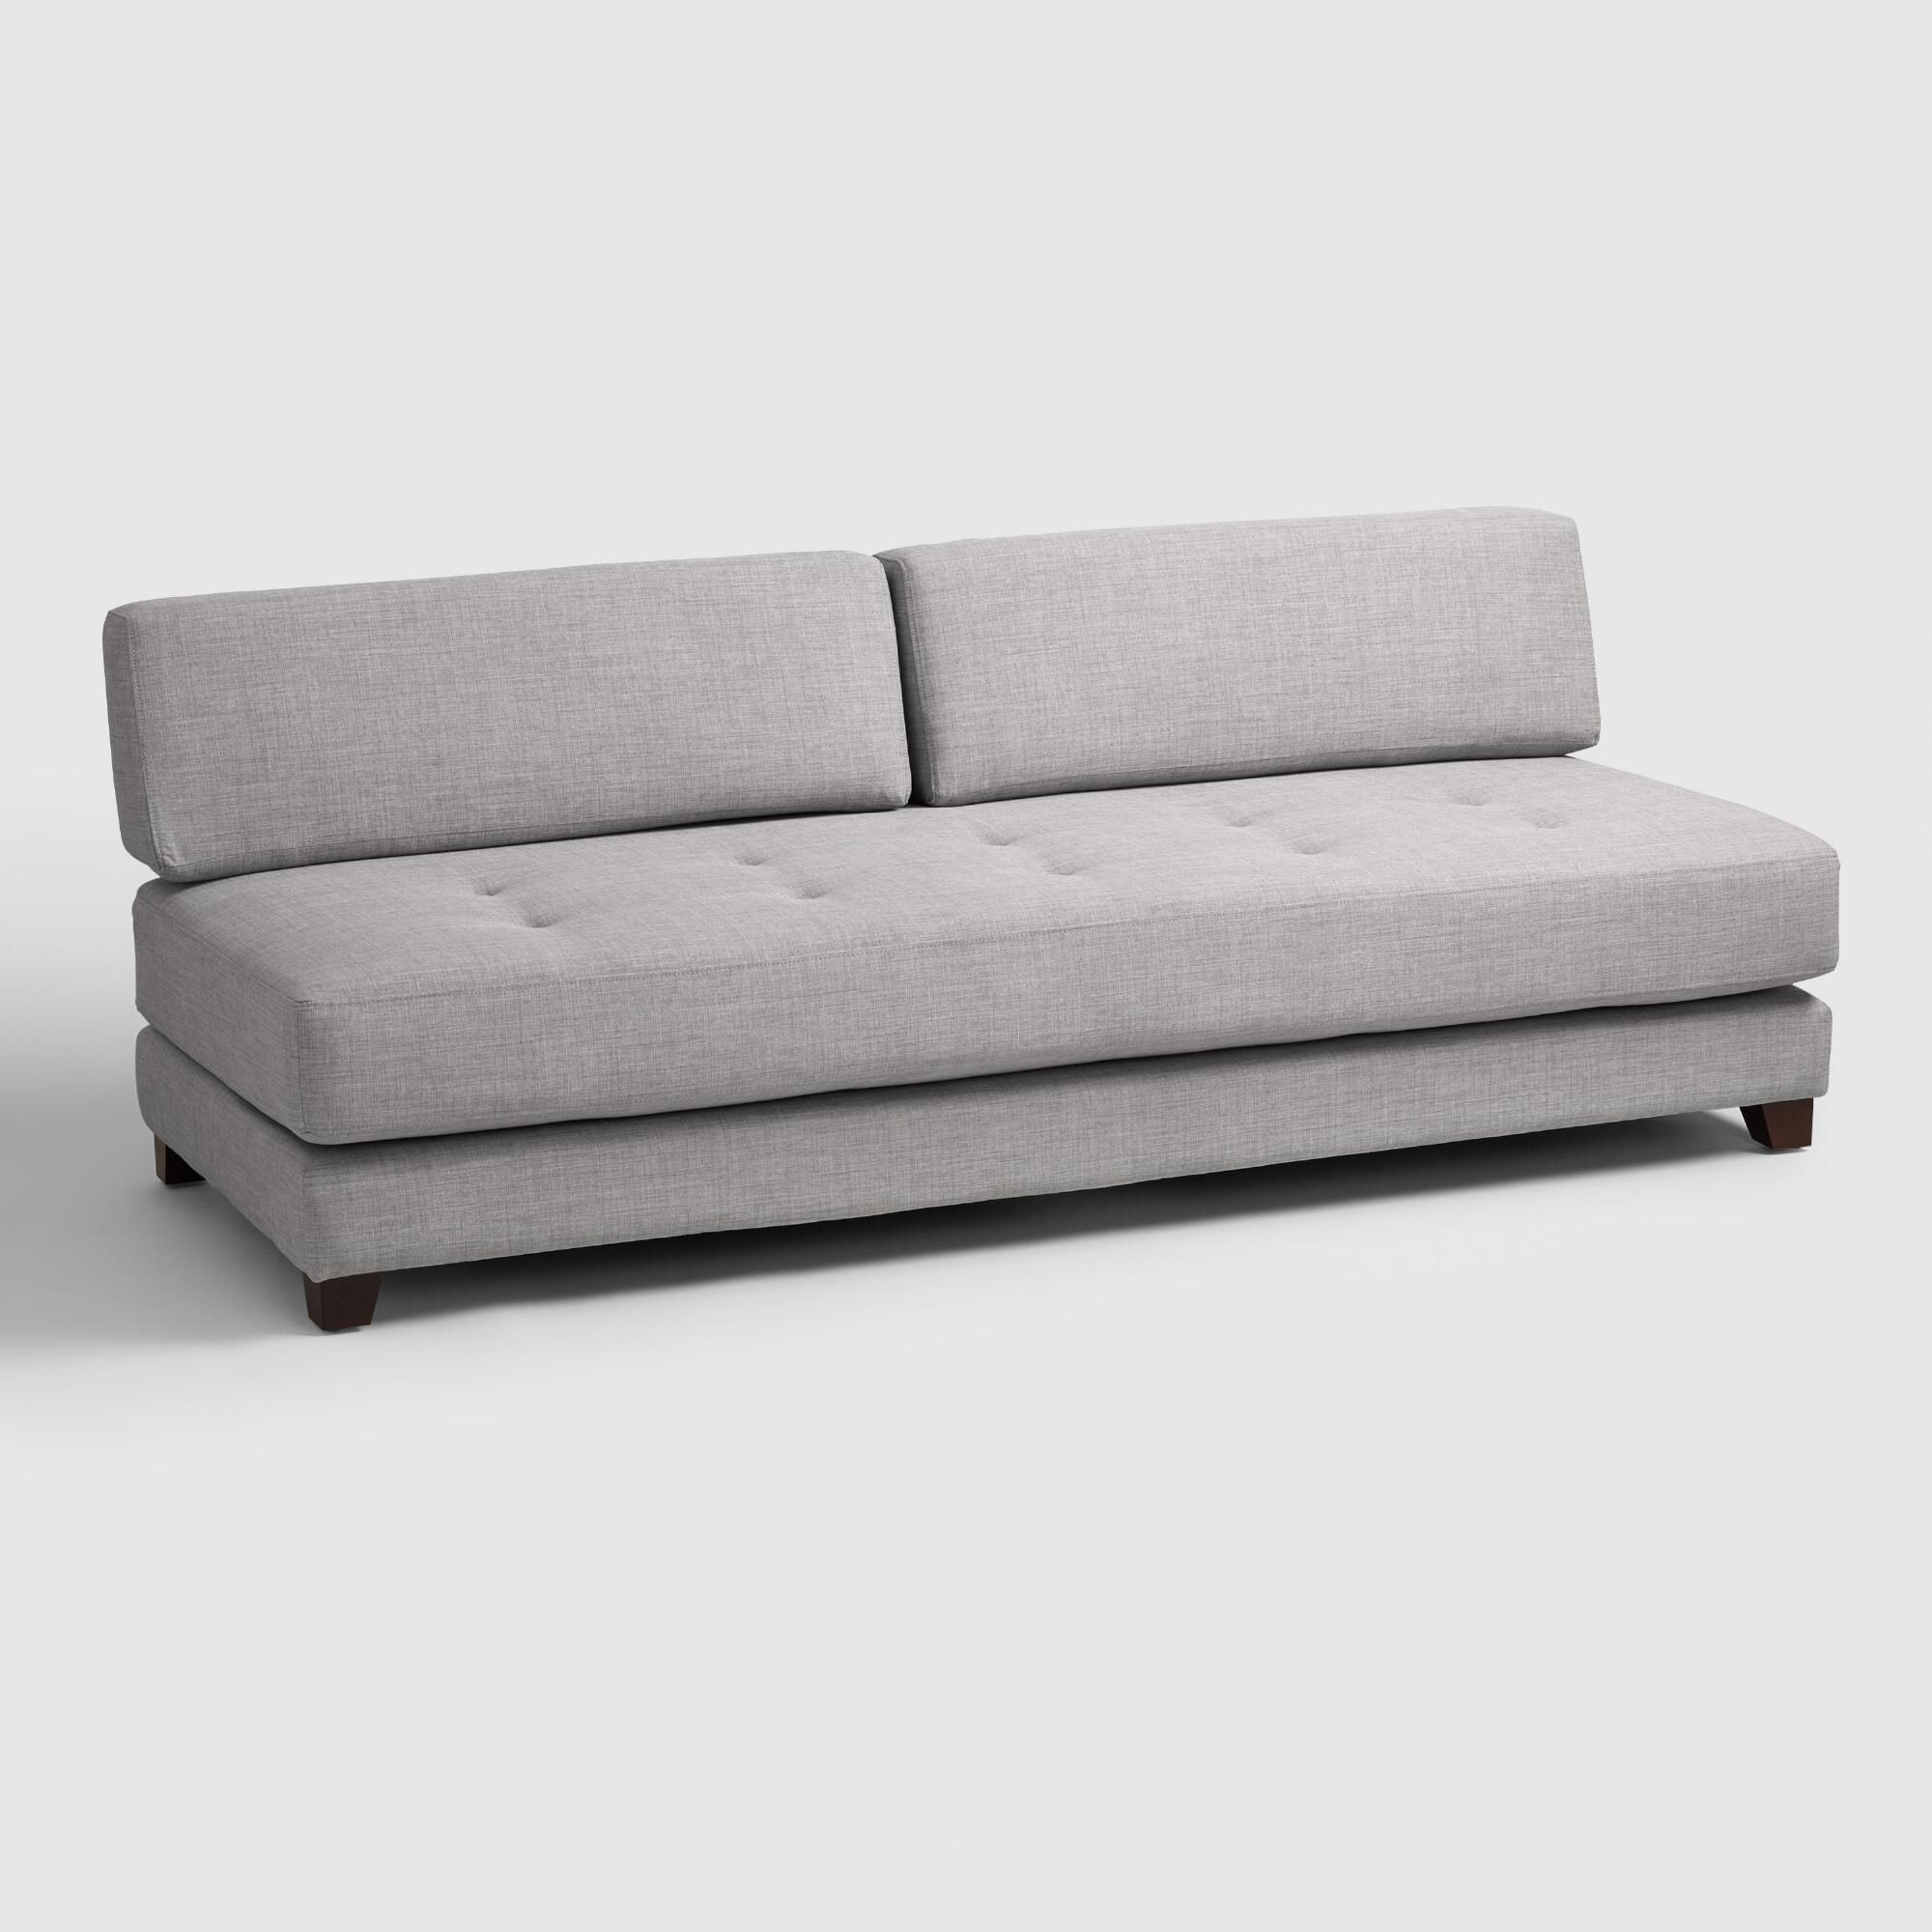 Light Gray Hartley Upholstered Duet Daybed Basement